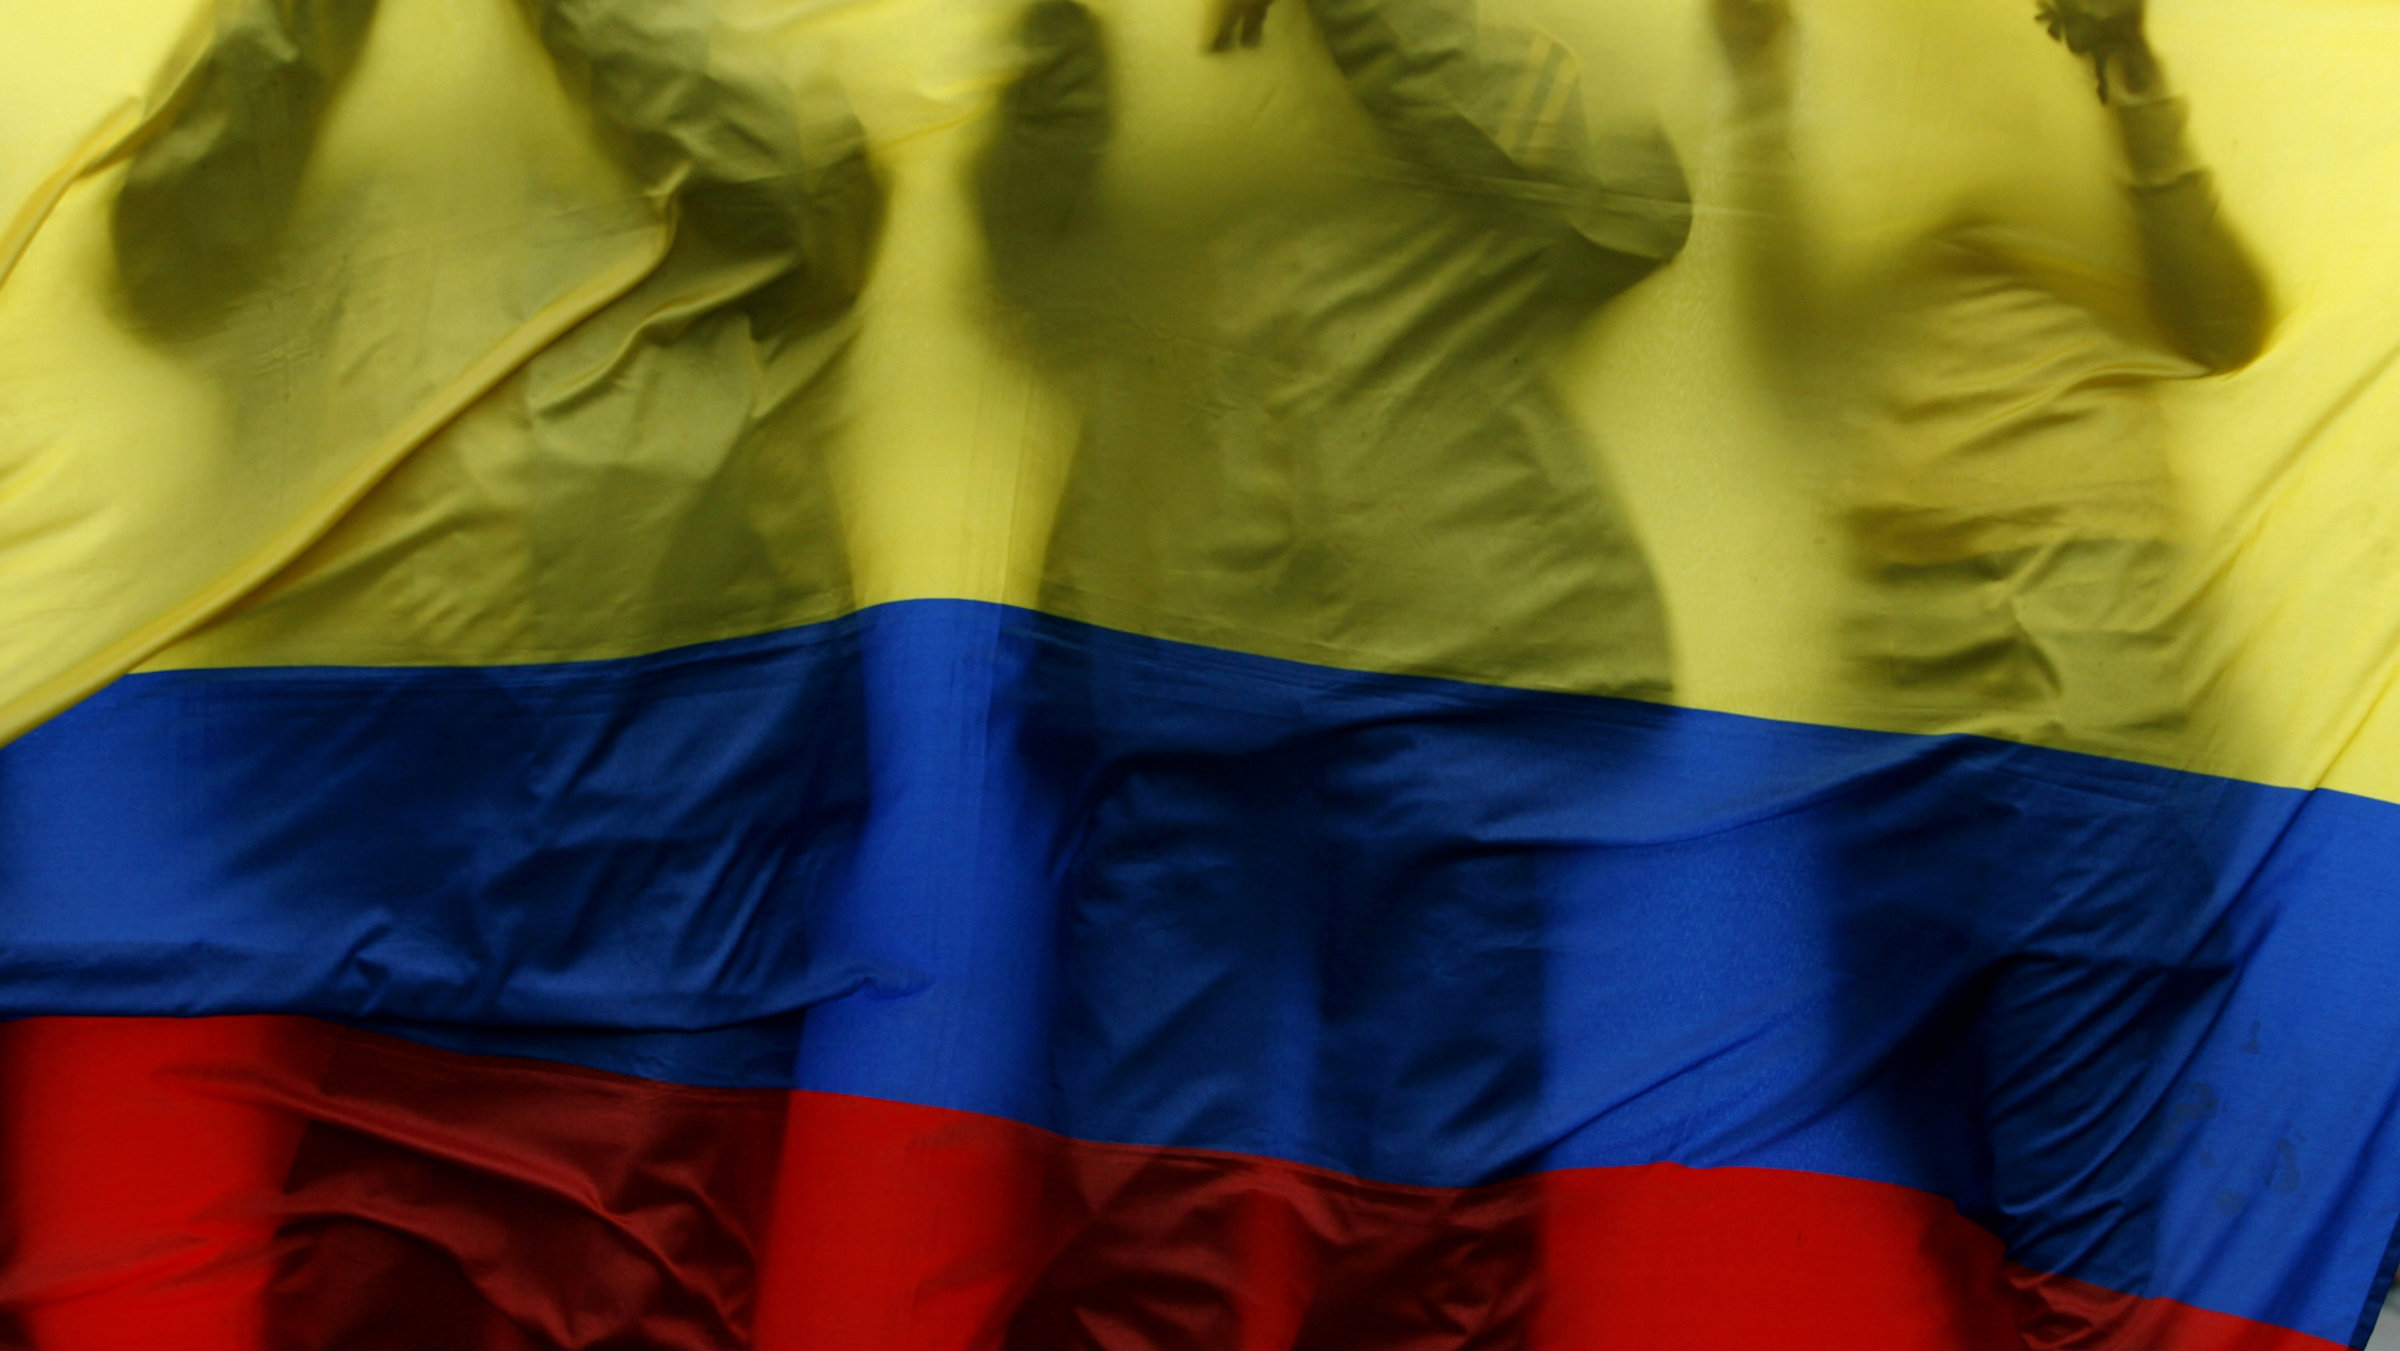 All sorts of tech companies have draped themselves in the Colombian flag.